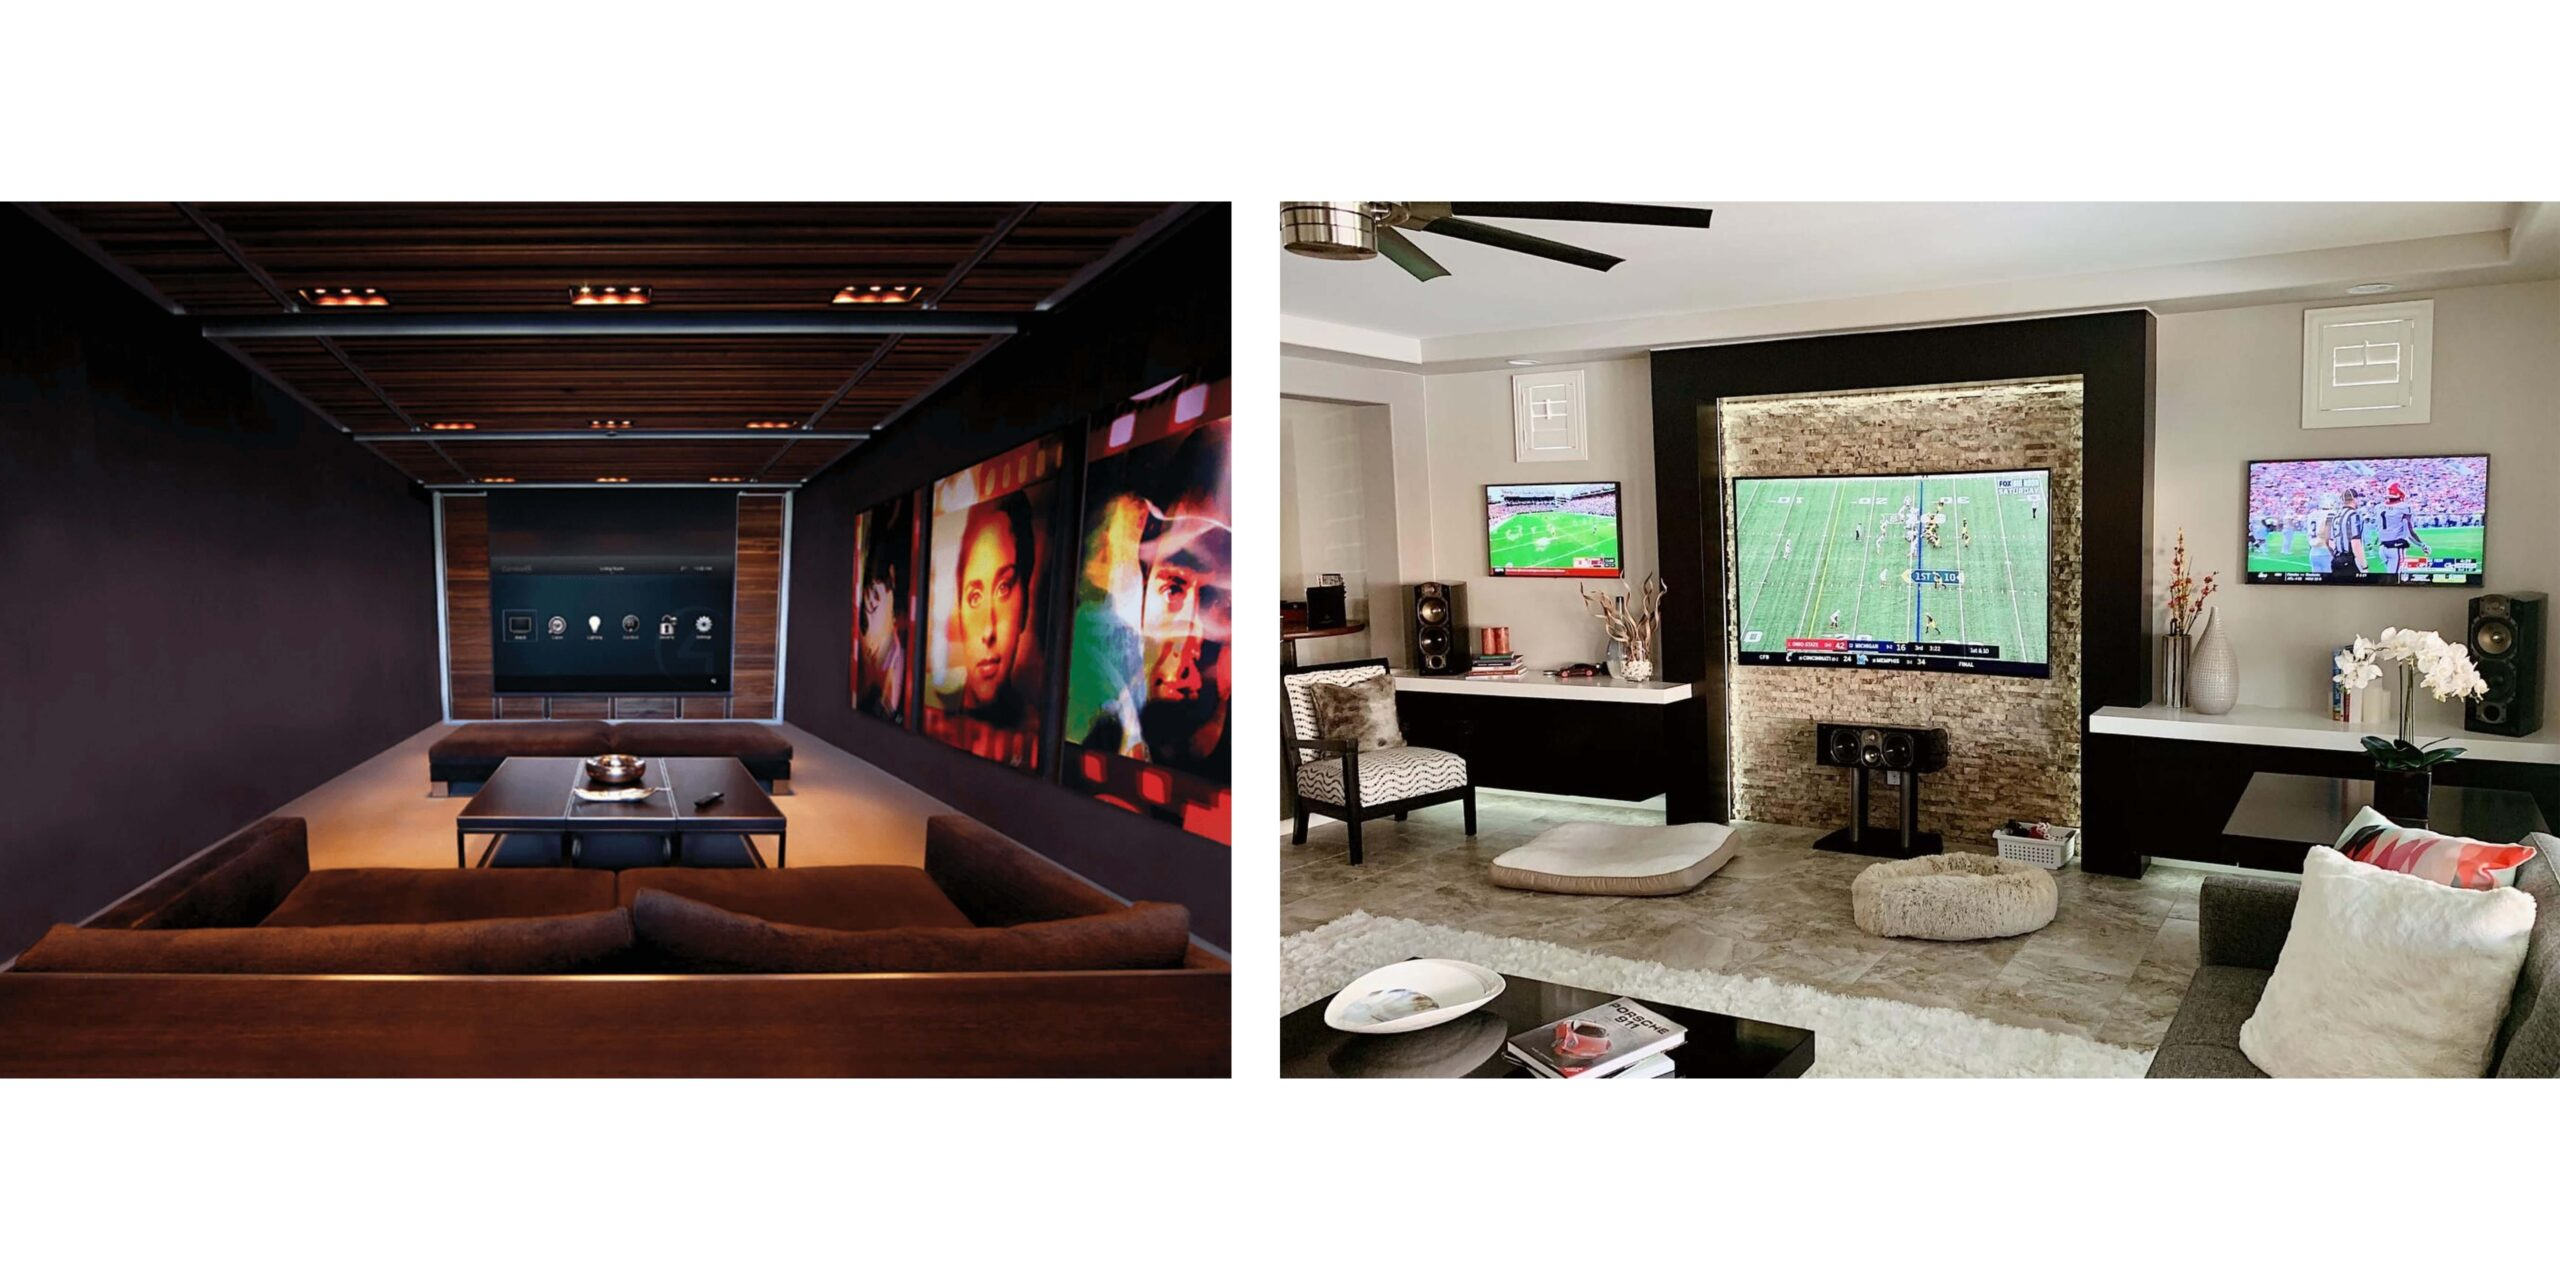 Home Theater vs. Media Room – What's the Difference?